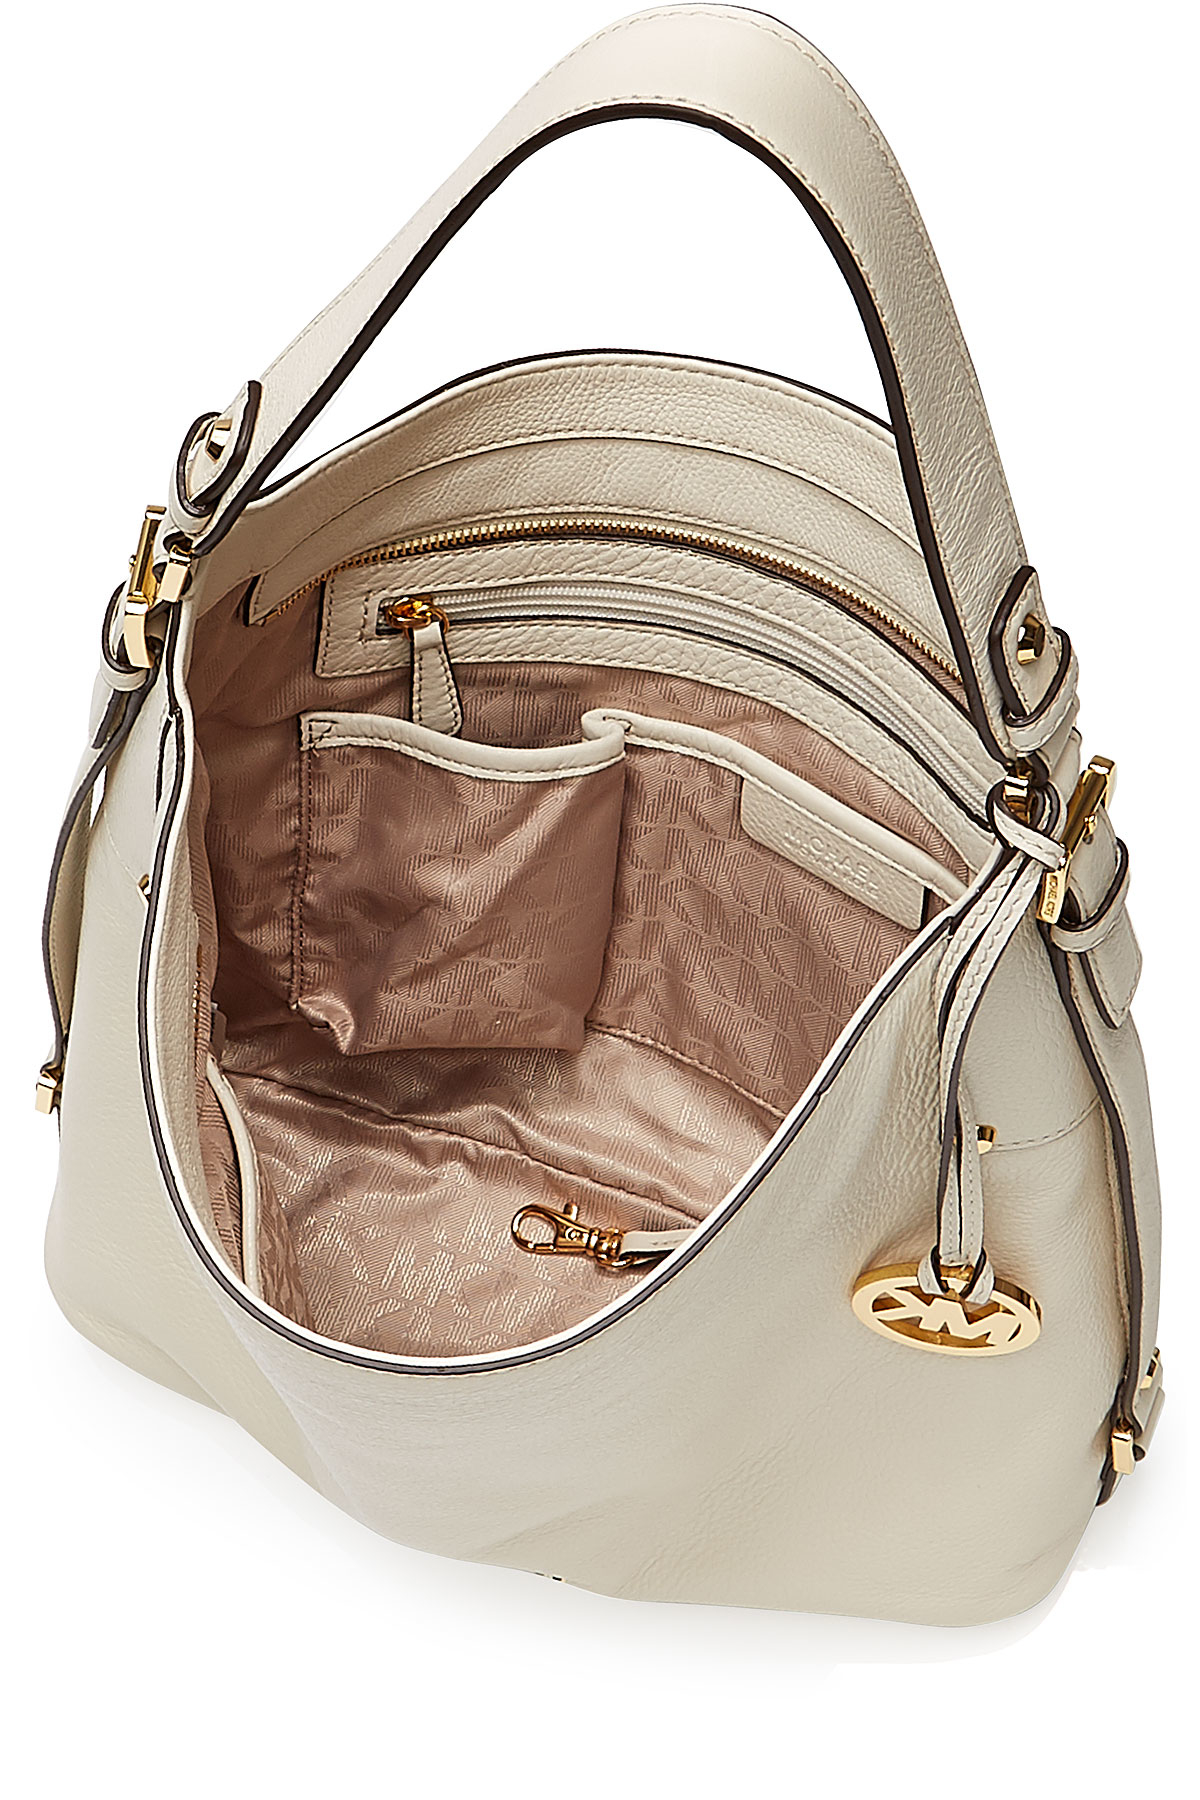 127bab9f6118ef ... shopping lyst michael michael kors bedford large leather shoulder bag  de0ed a8c58